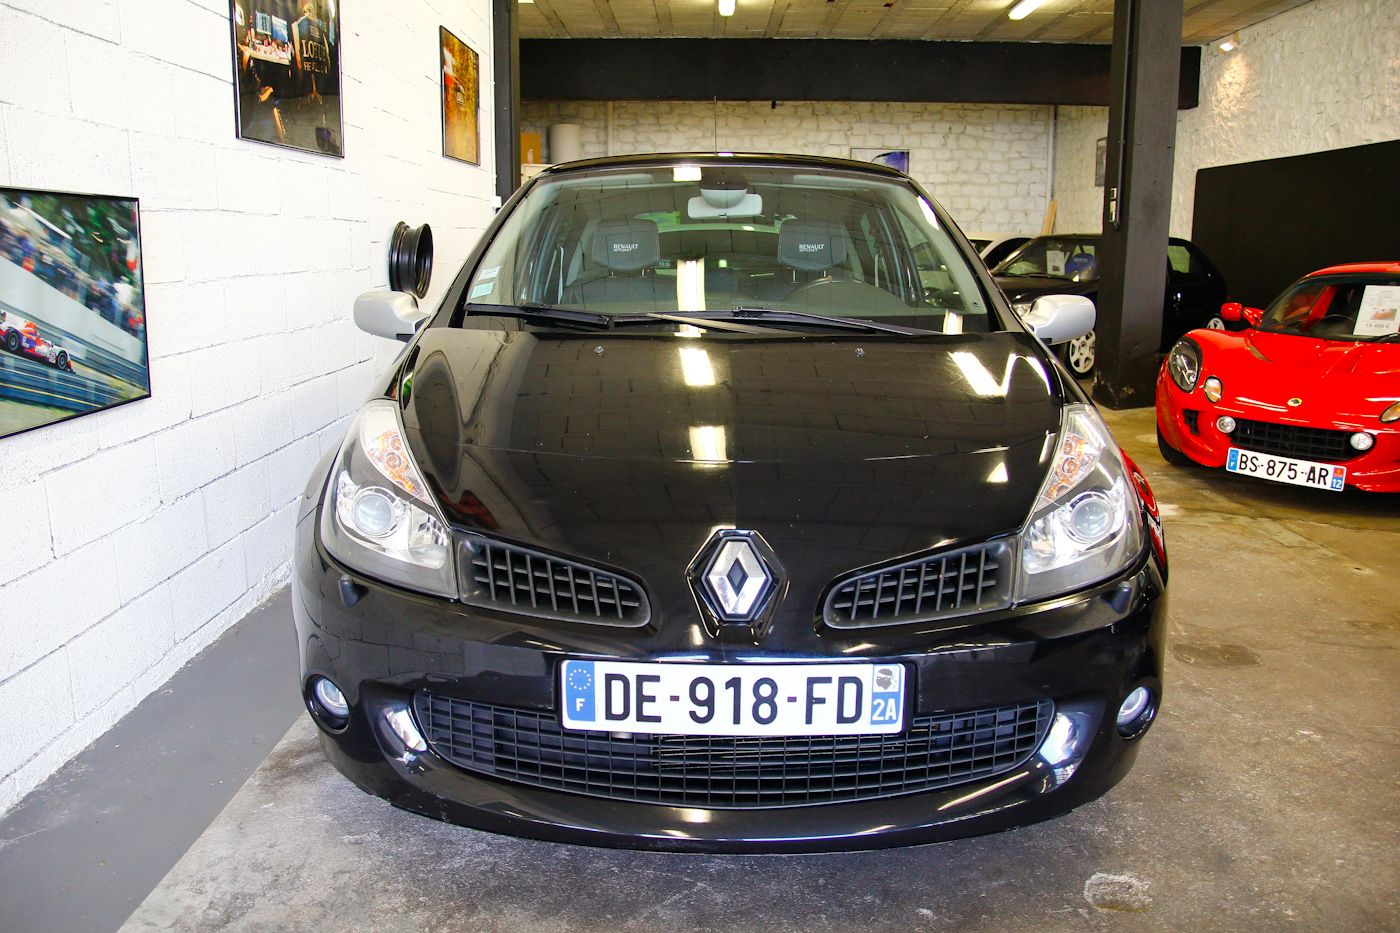 2007 Renault Clio RS Luxe photo - 3